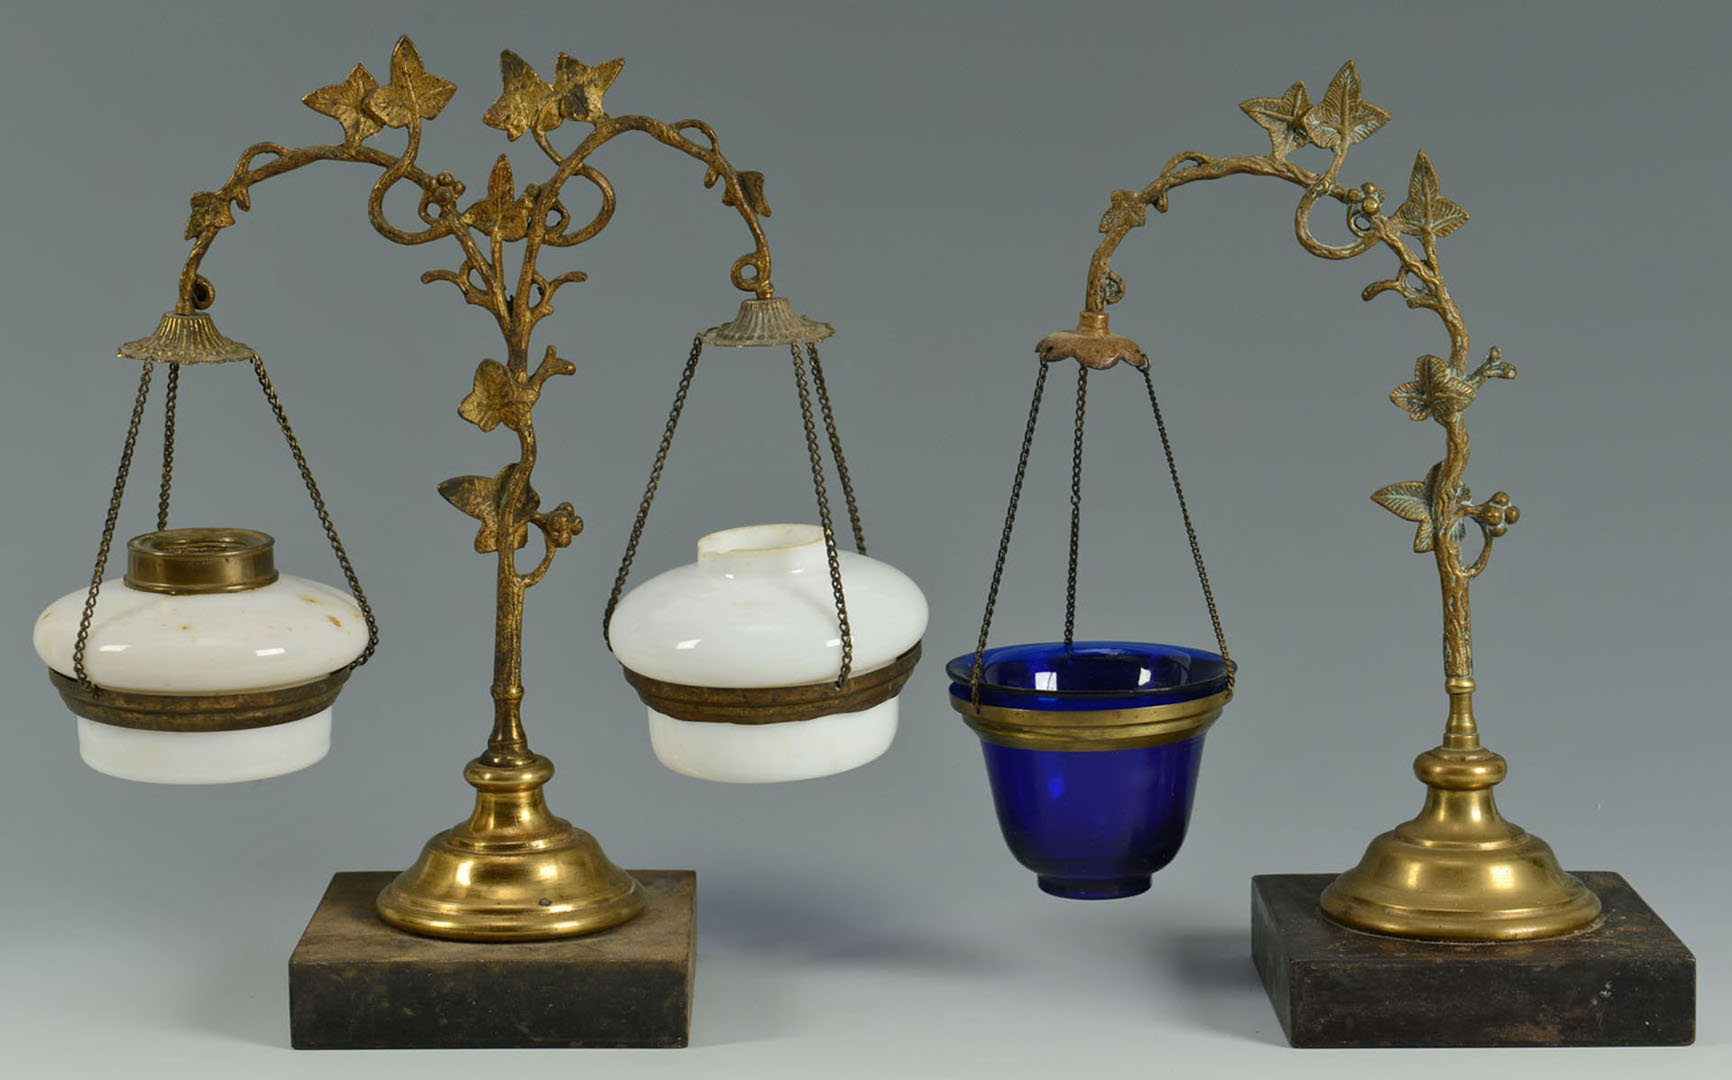 Lot 2872321: 2 Gilt Metal Lamp Stands and Other Items